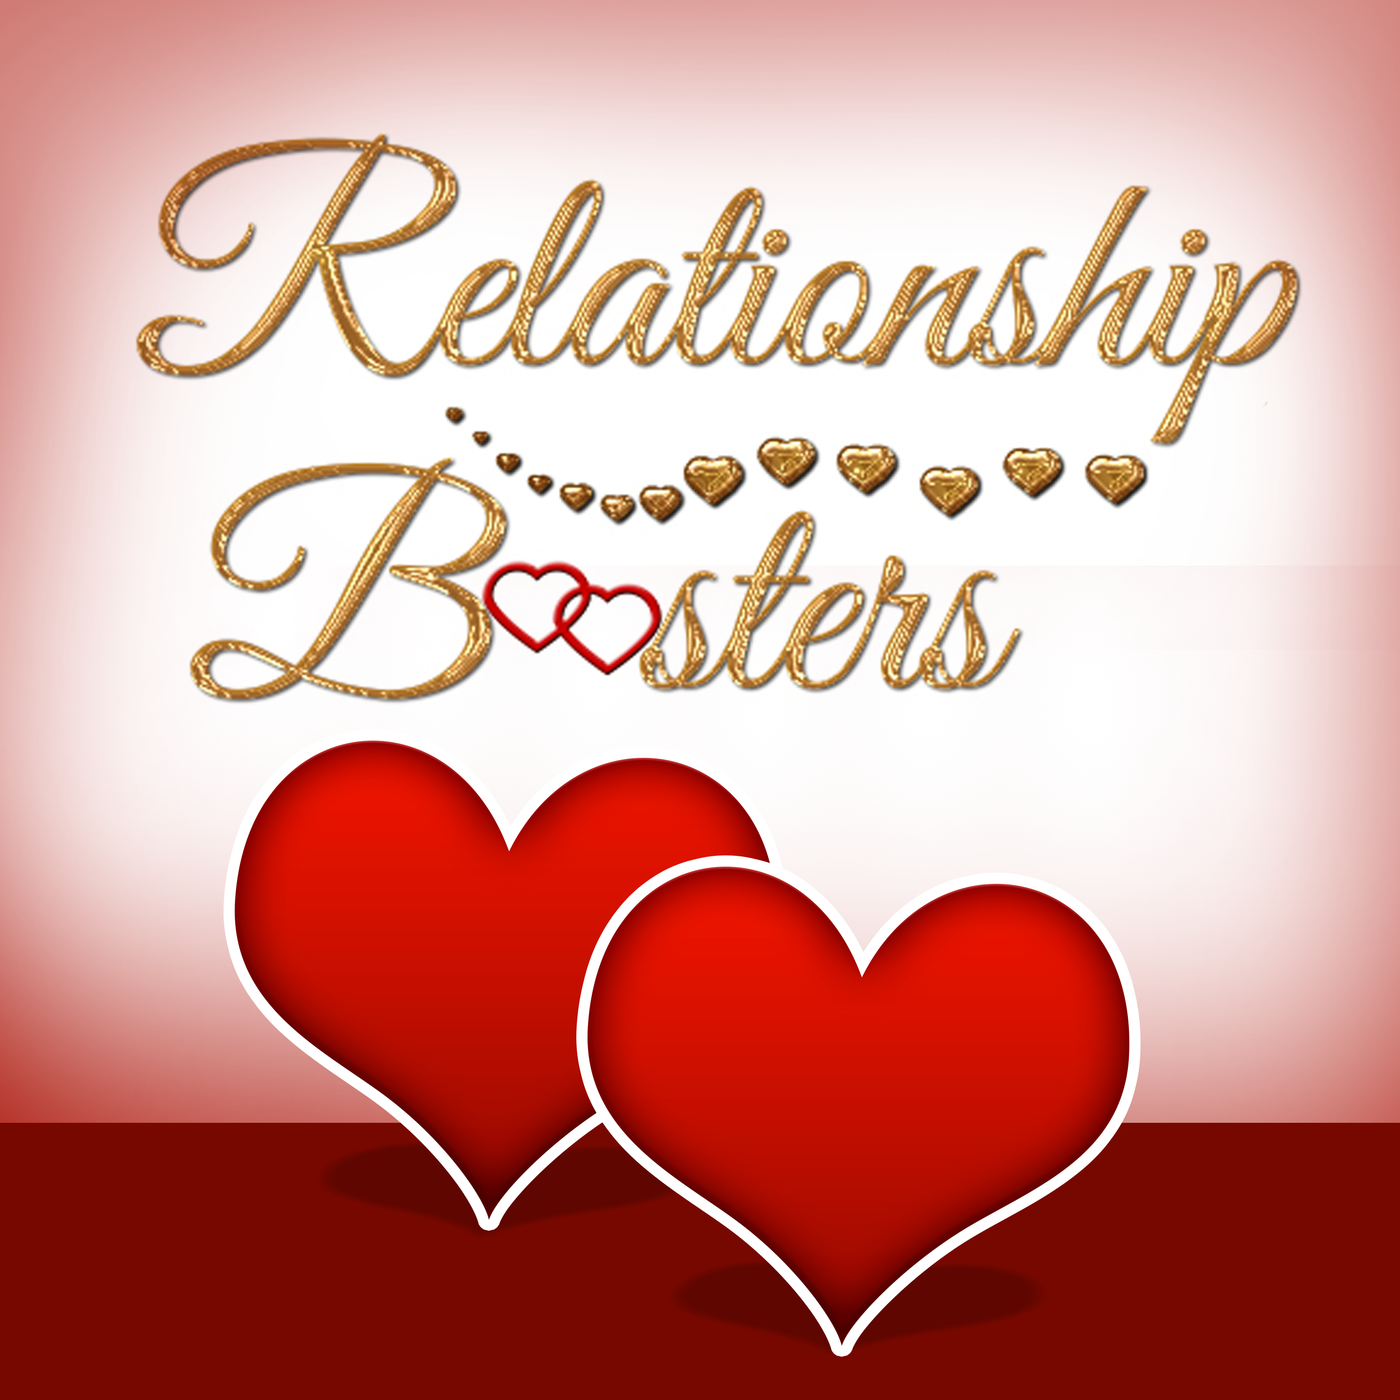 Relationship Boosters | Couples | Marriage | Intimacy| Love | Family | Counseling | Marriage Advice | Healthy Marriage